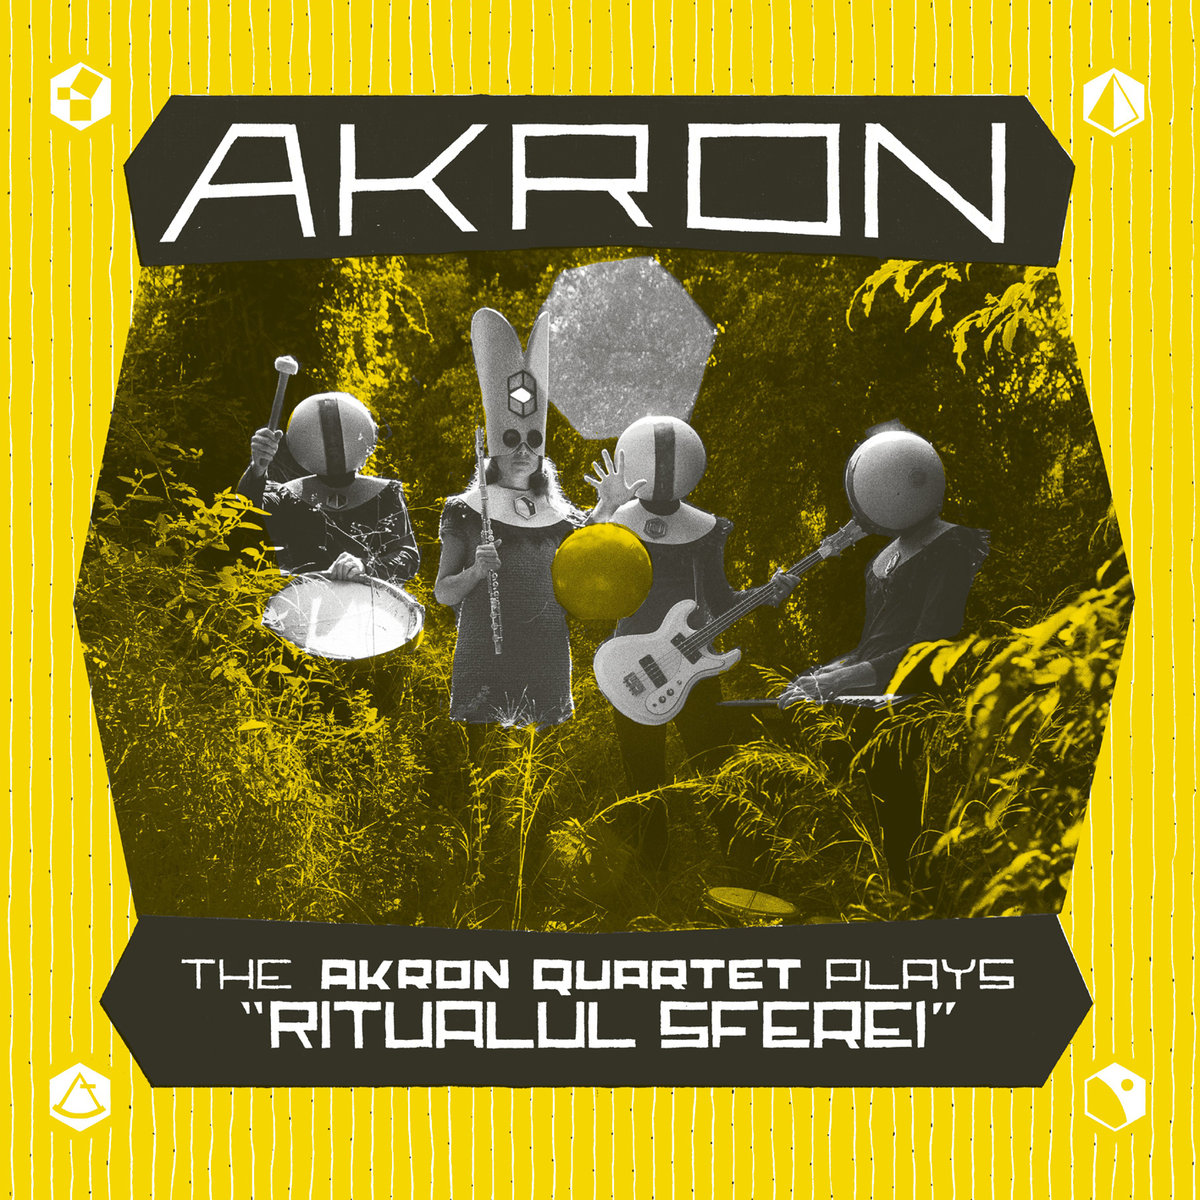 The Akron Quartet Plays